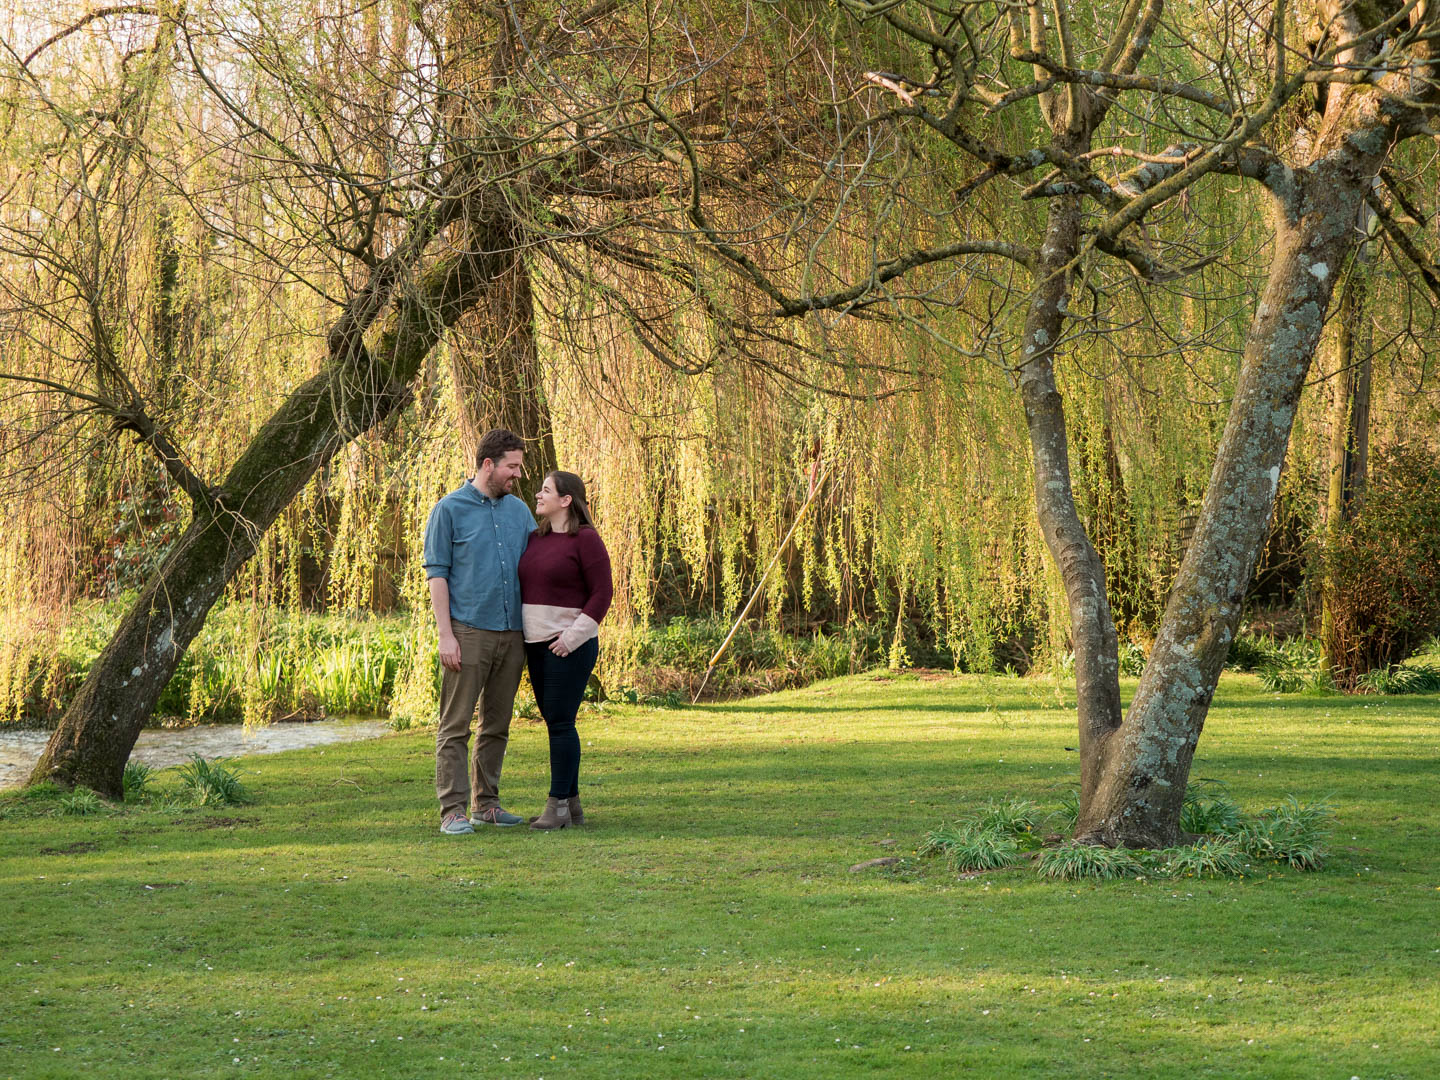 Rural Hampshire engagement shoot – man and woman pose beneath weeping willows